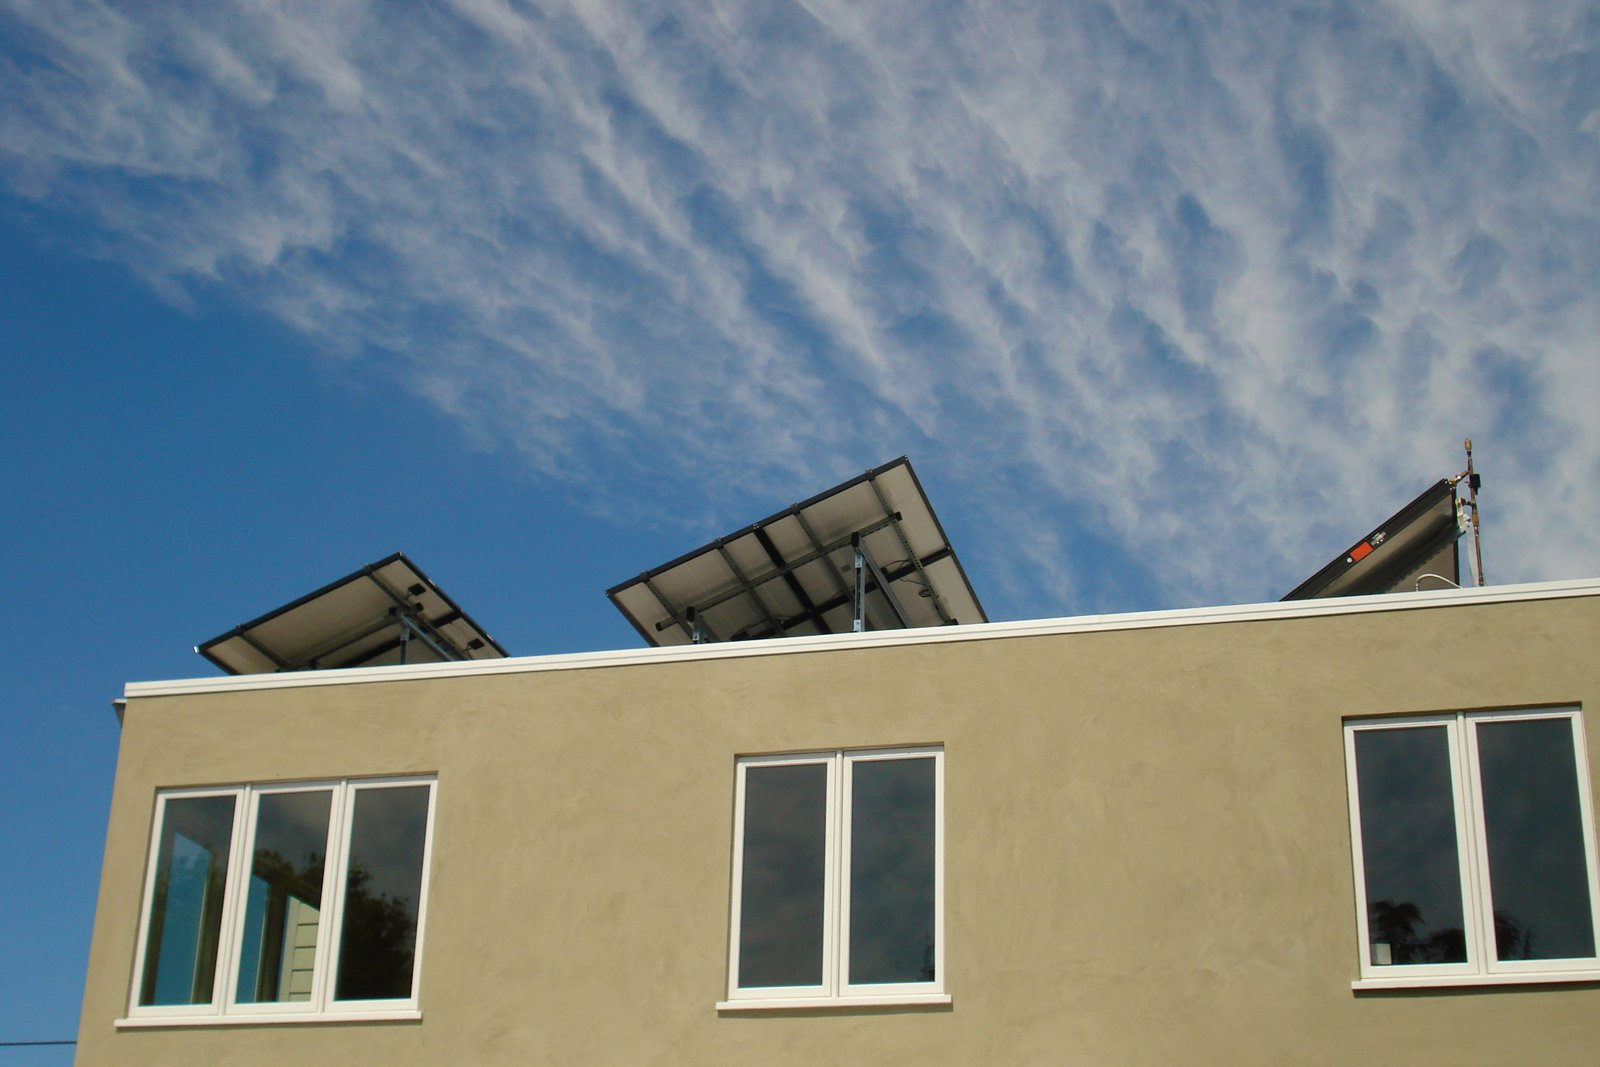 One of the main additions to the home was the rooftop solar hot water and 2.1 kW energy system, shown here from the rear of the house. The system is by Heliodyne.  Building Green in Albany by Diana Budds